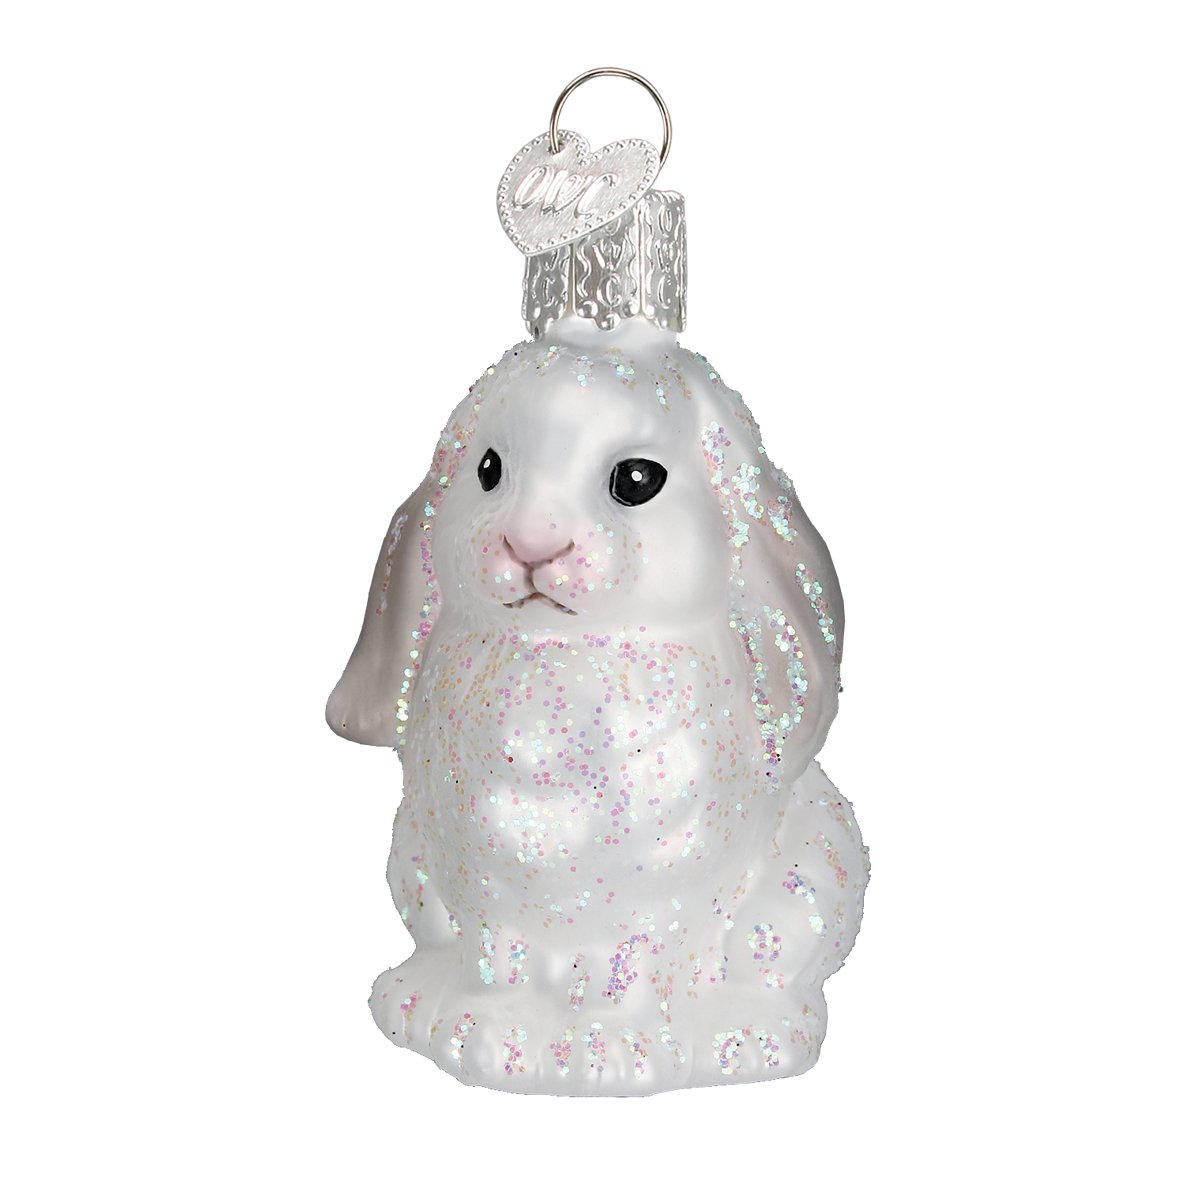 Old World Christmas - White Baby Bunny Ornament